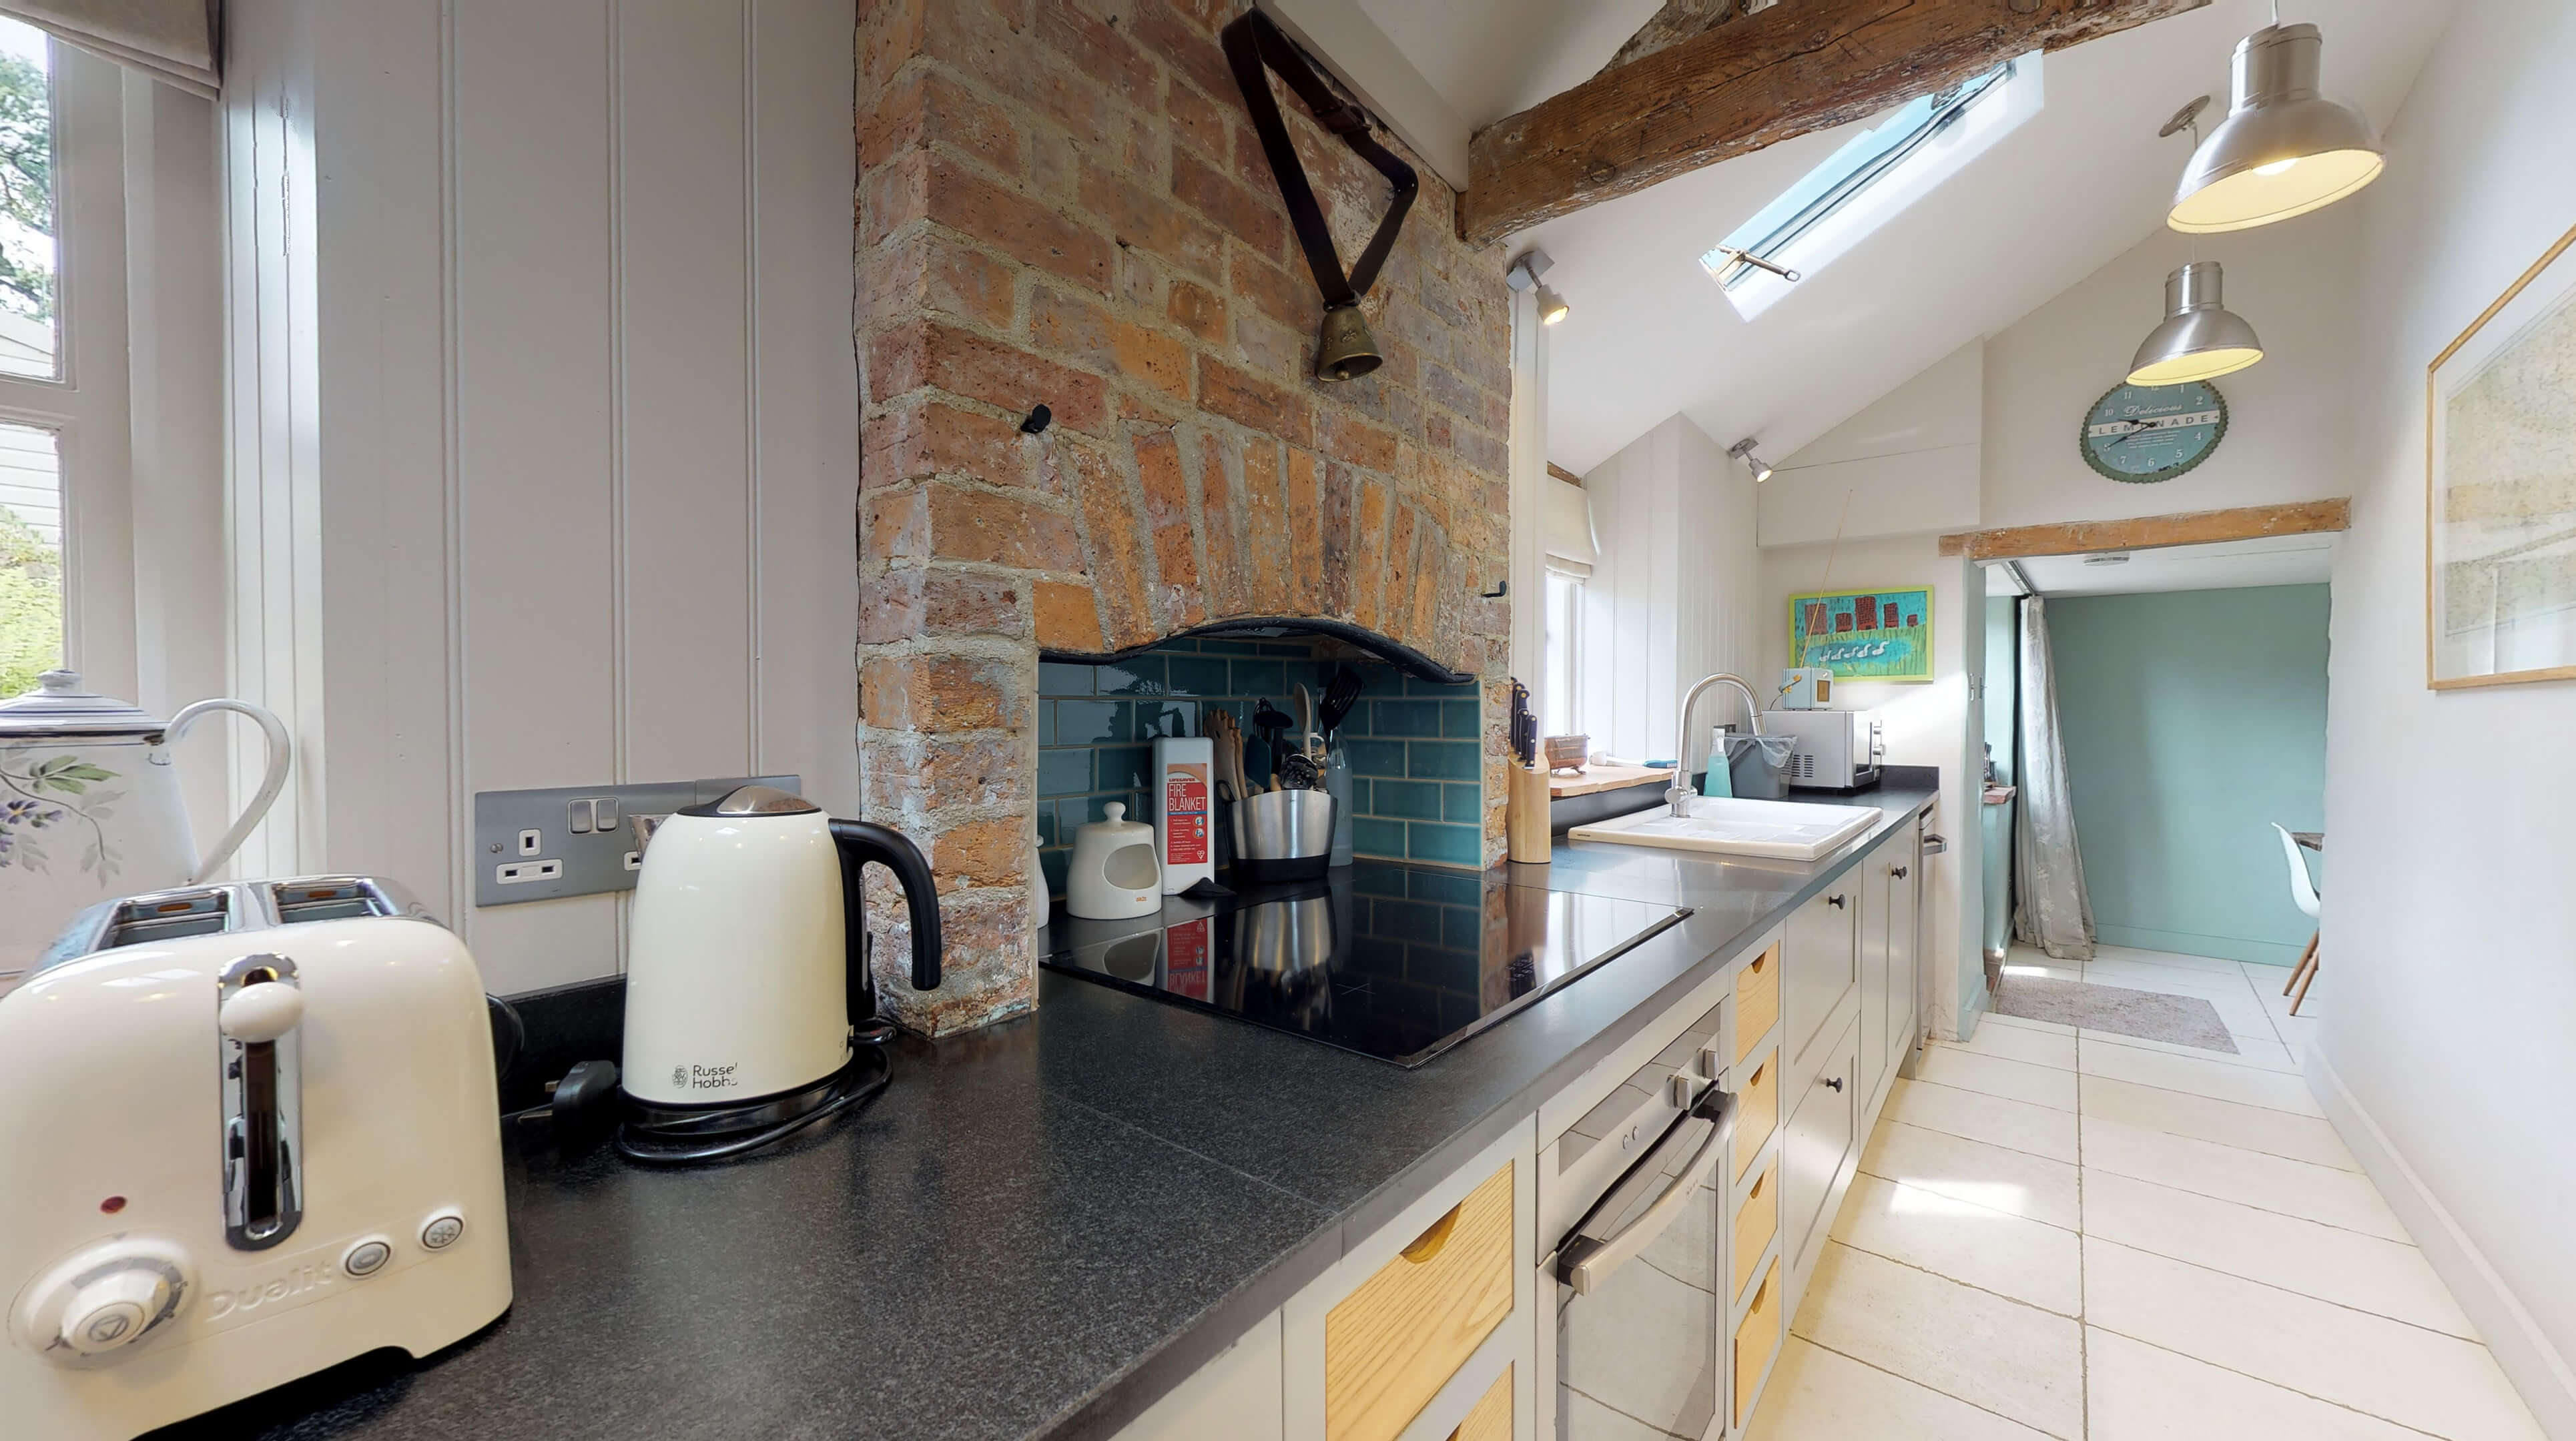 Lower Heyford Three Bedroom Coopers Cottage Kitchen 3